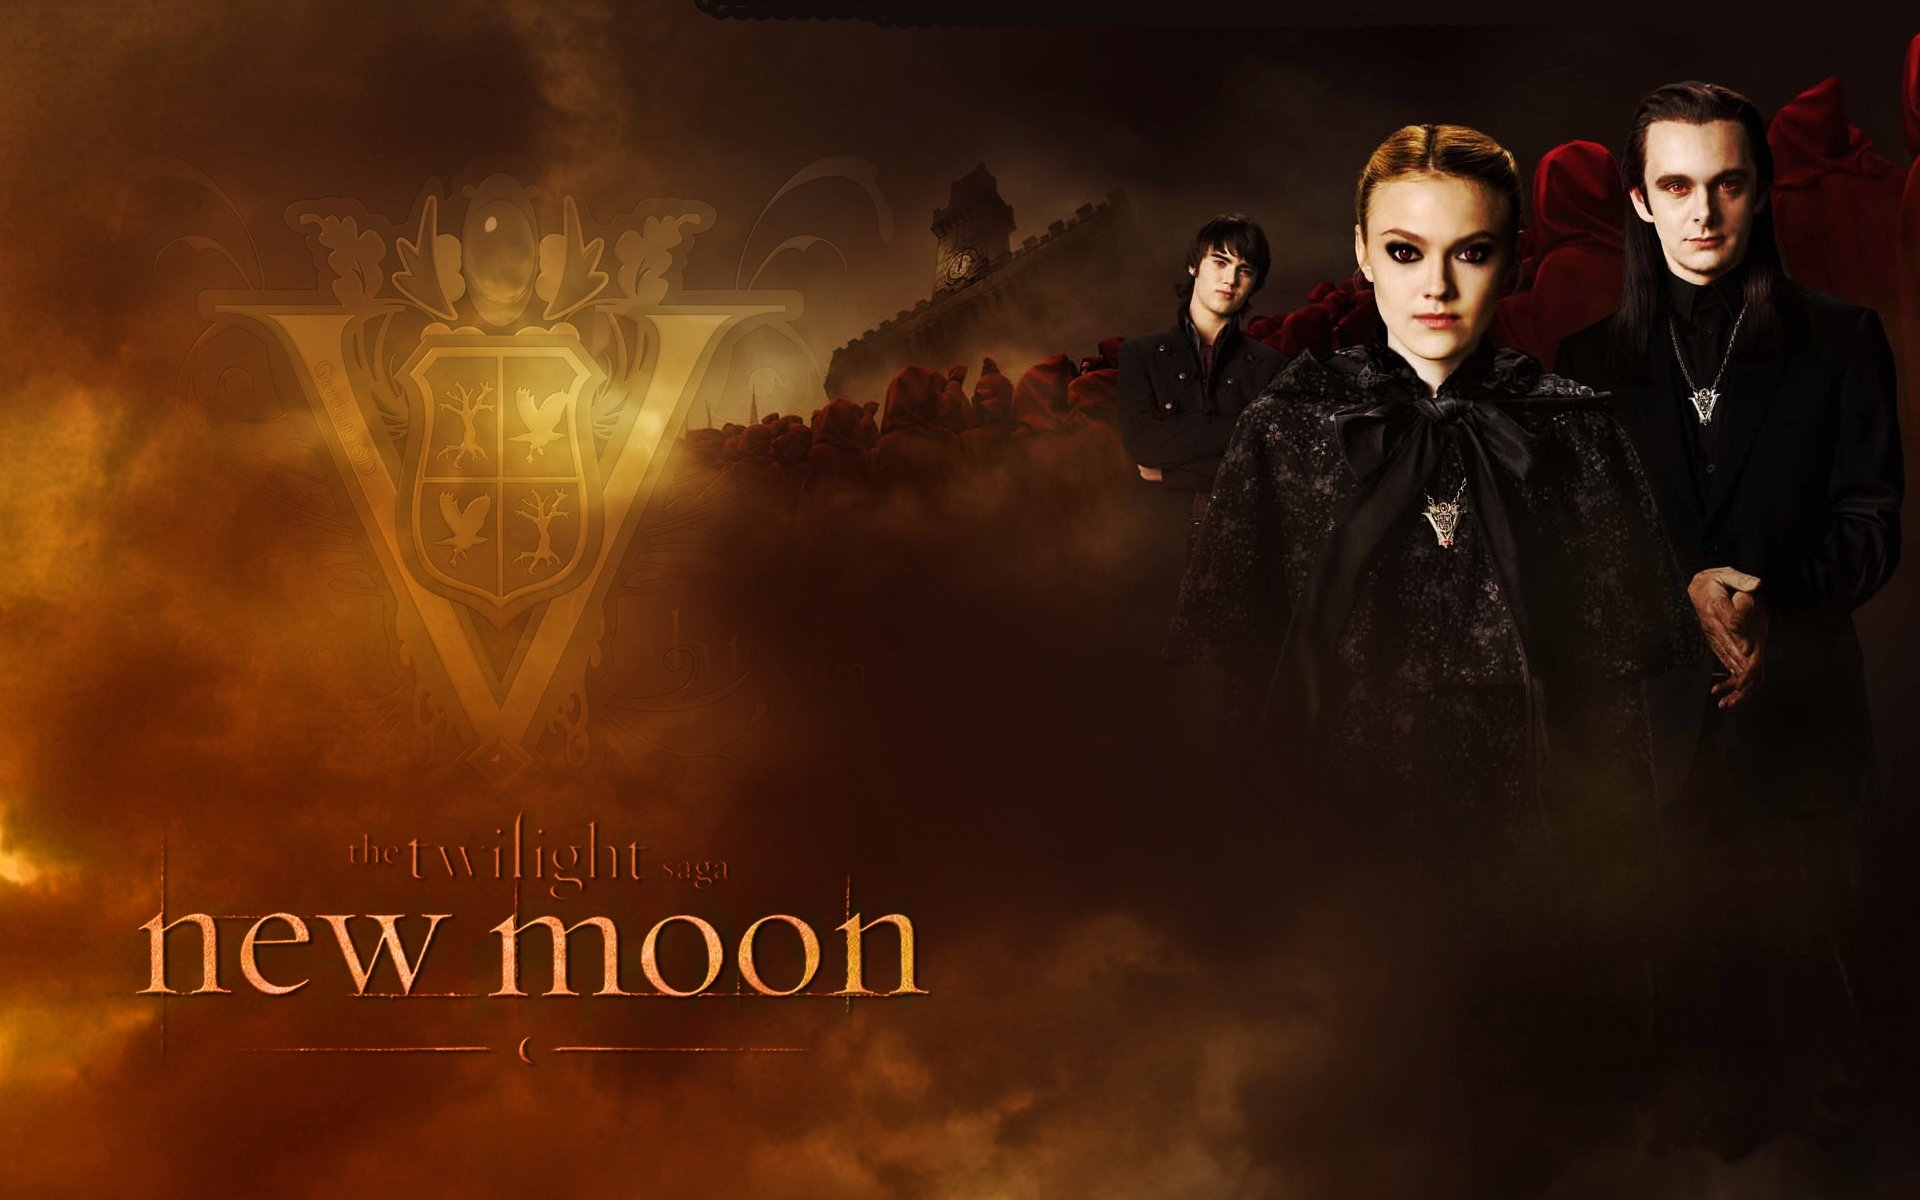 THE-VOLTURI-twilight-series-8392242-1920-1200 - сумреки обои